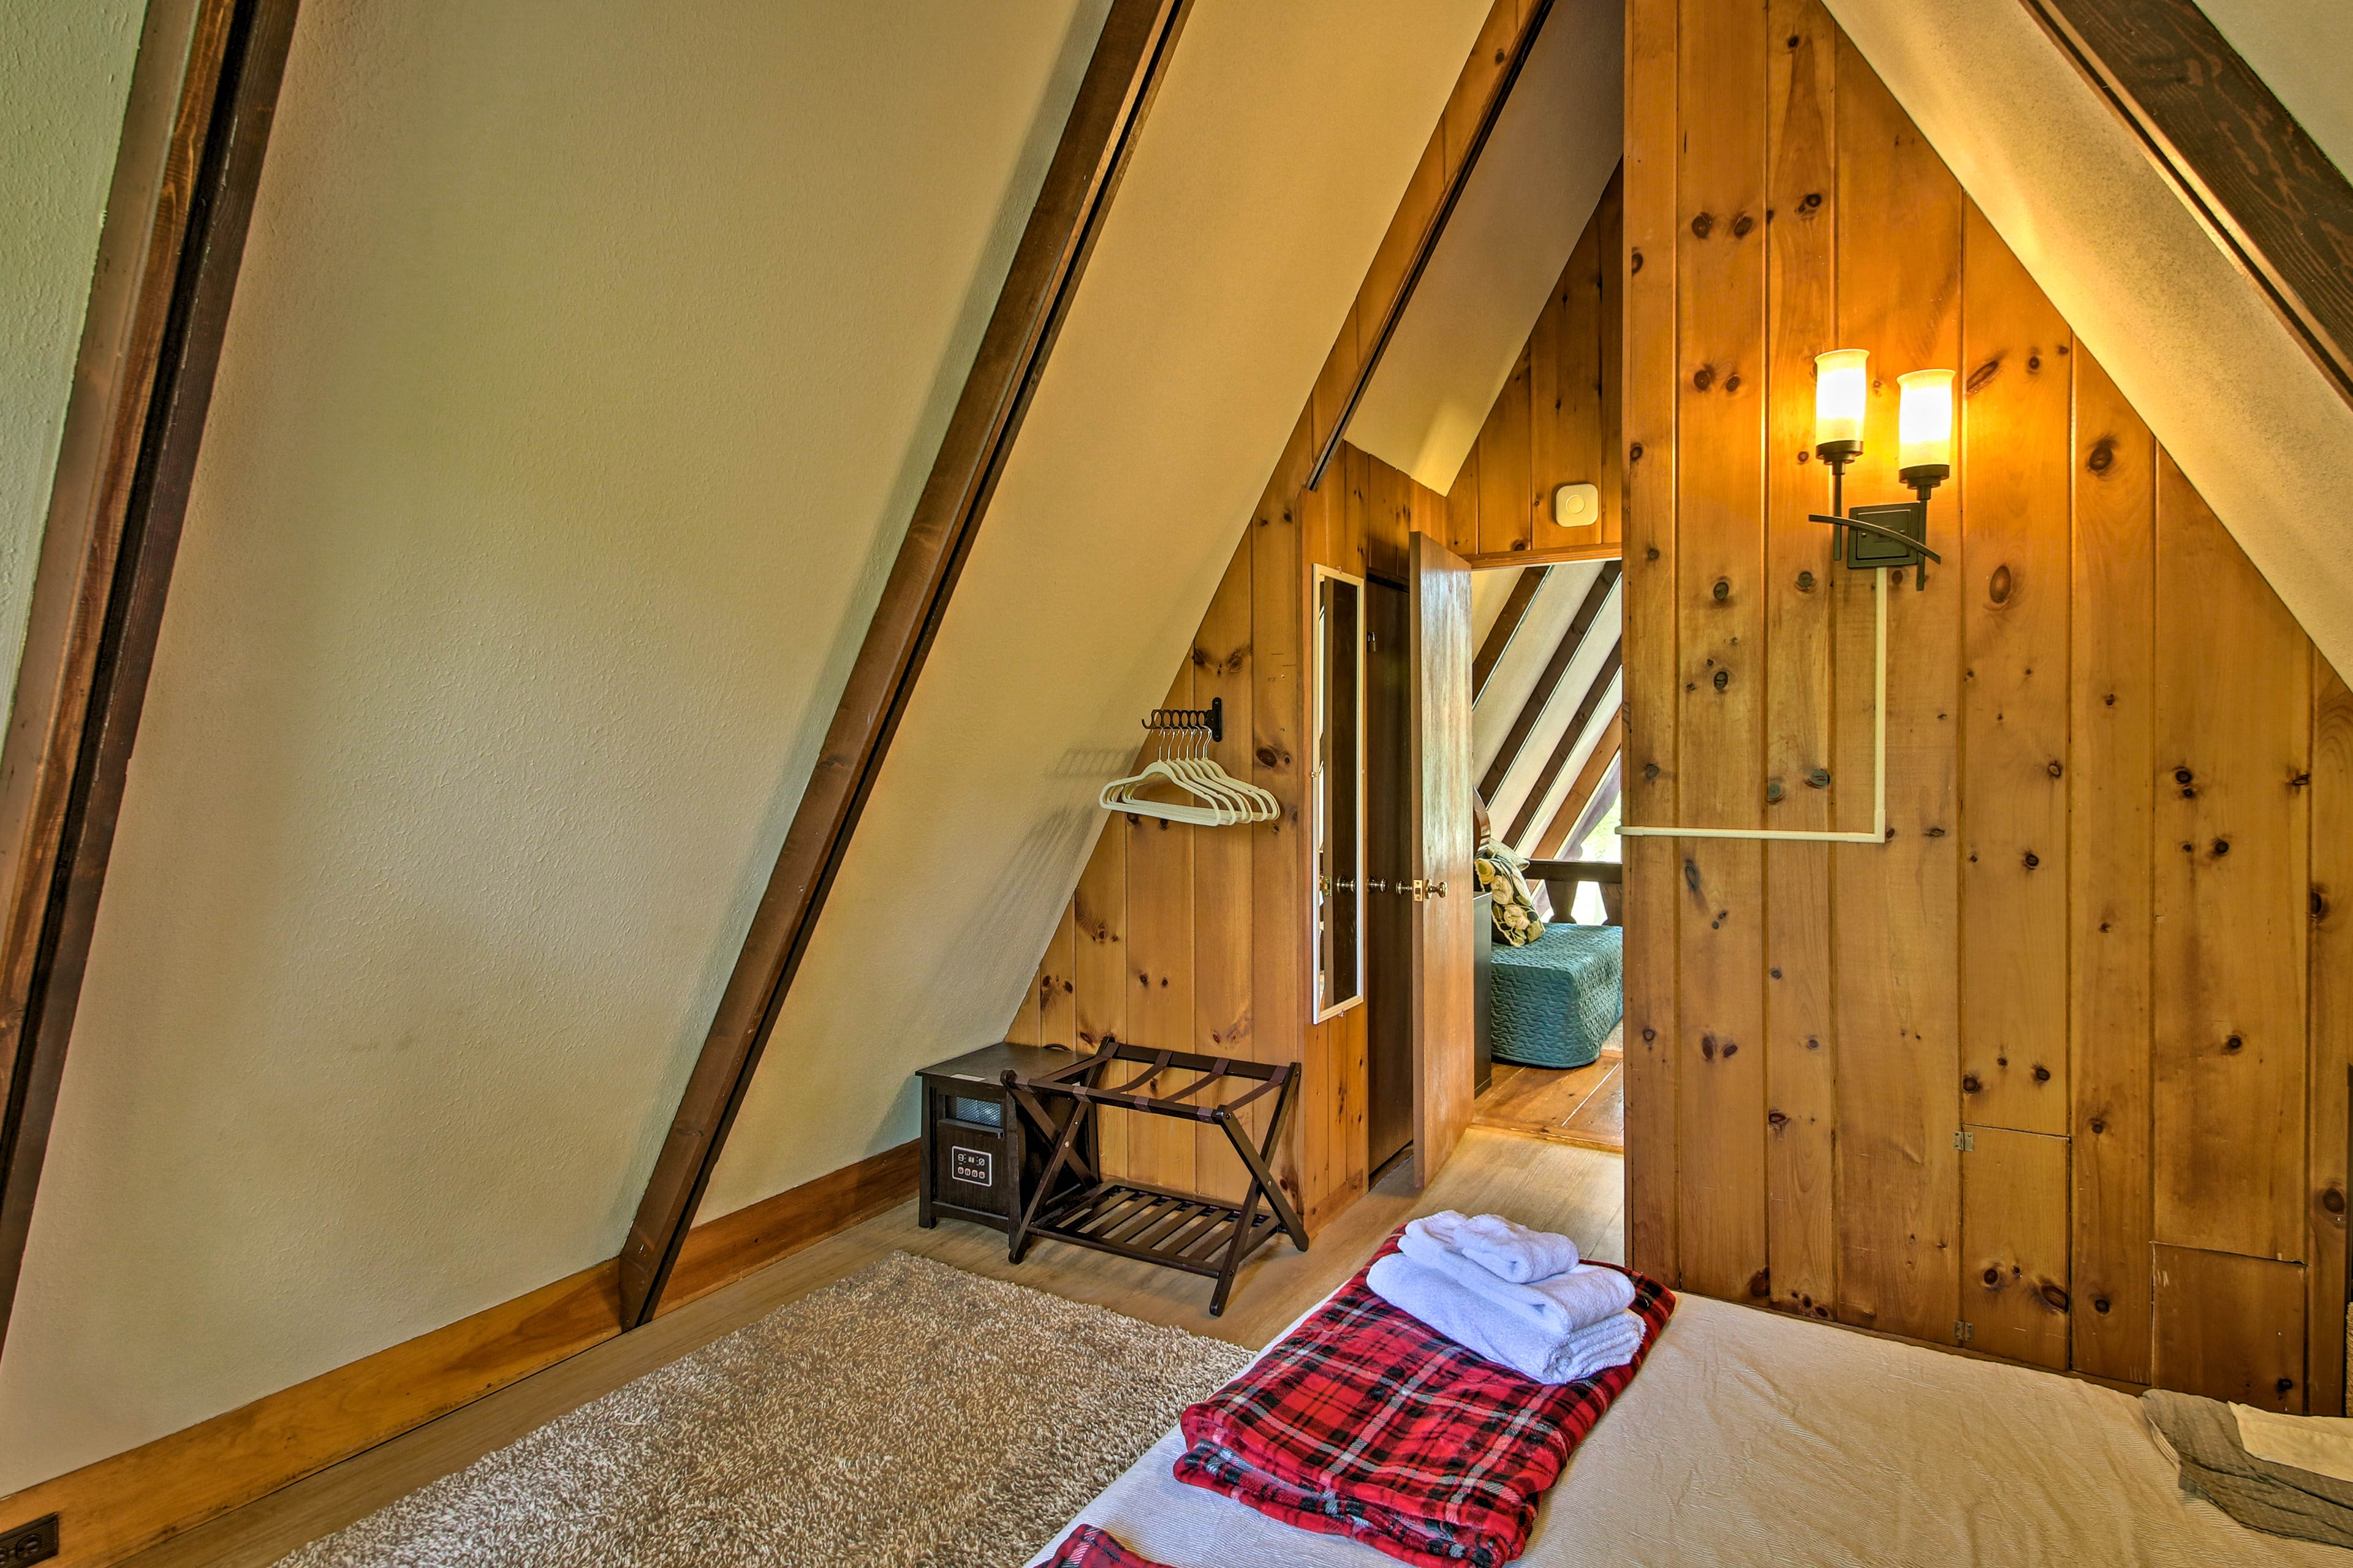 Admire the exposed wooden beams.